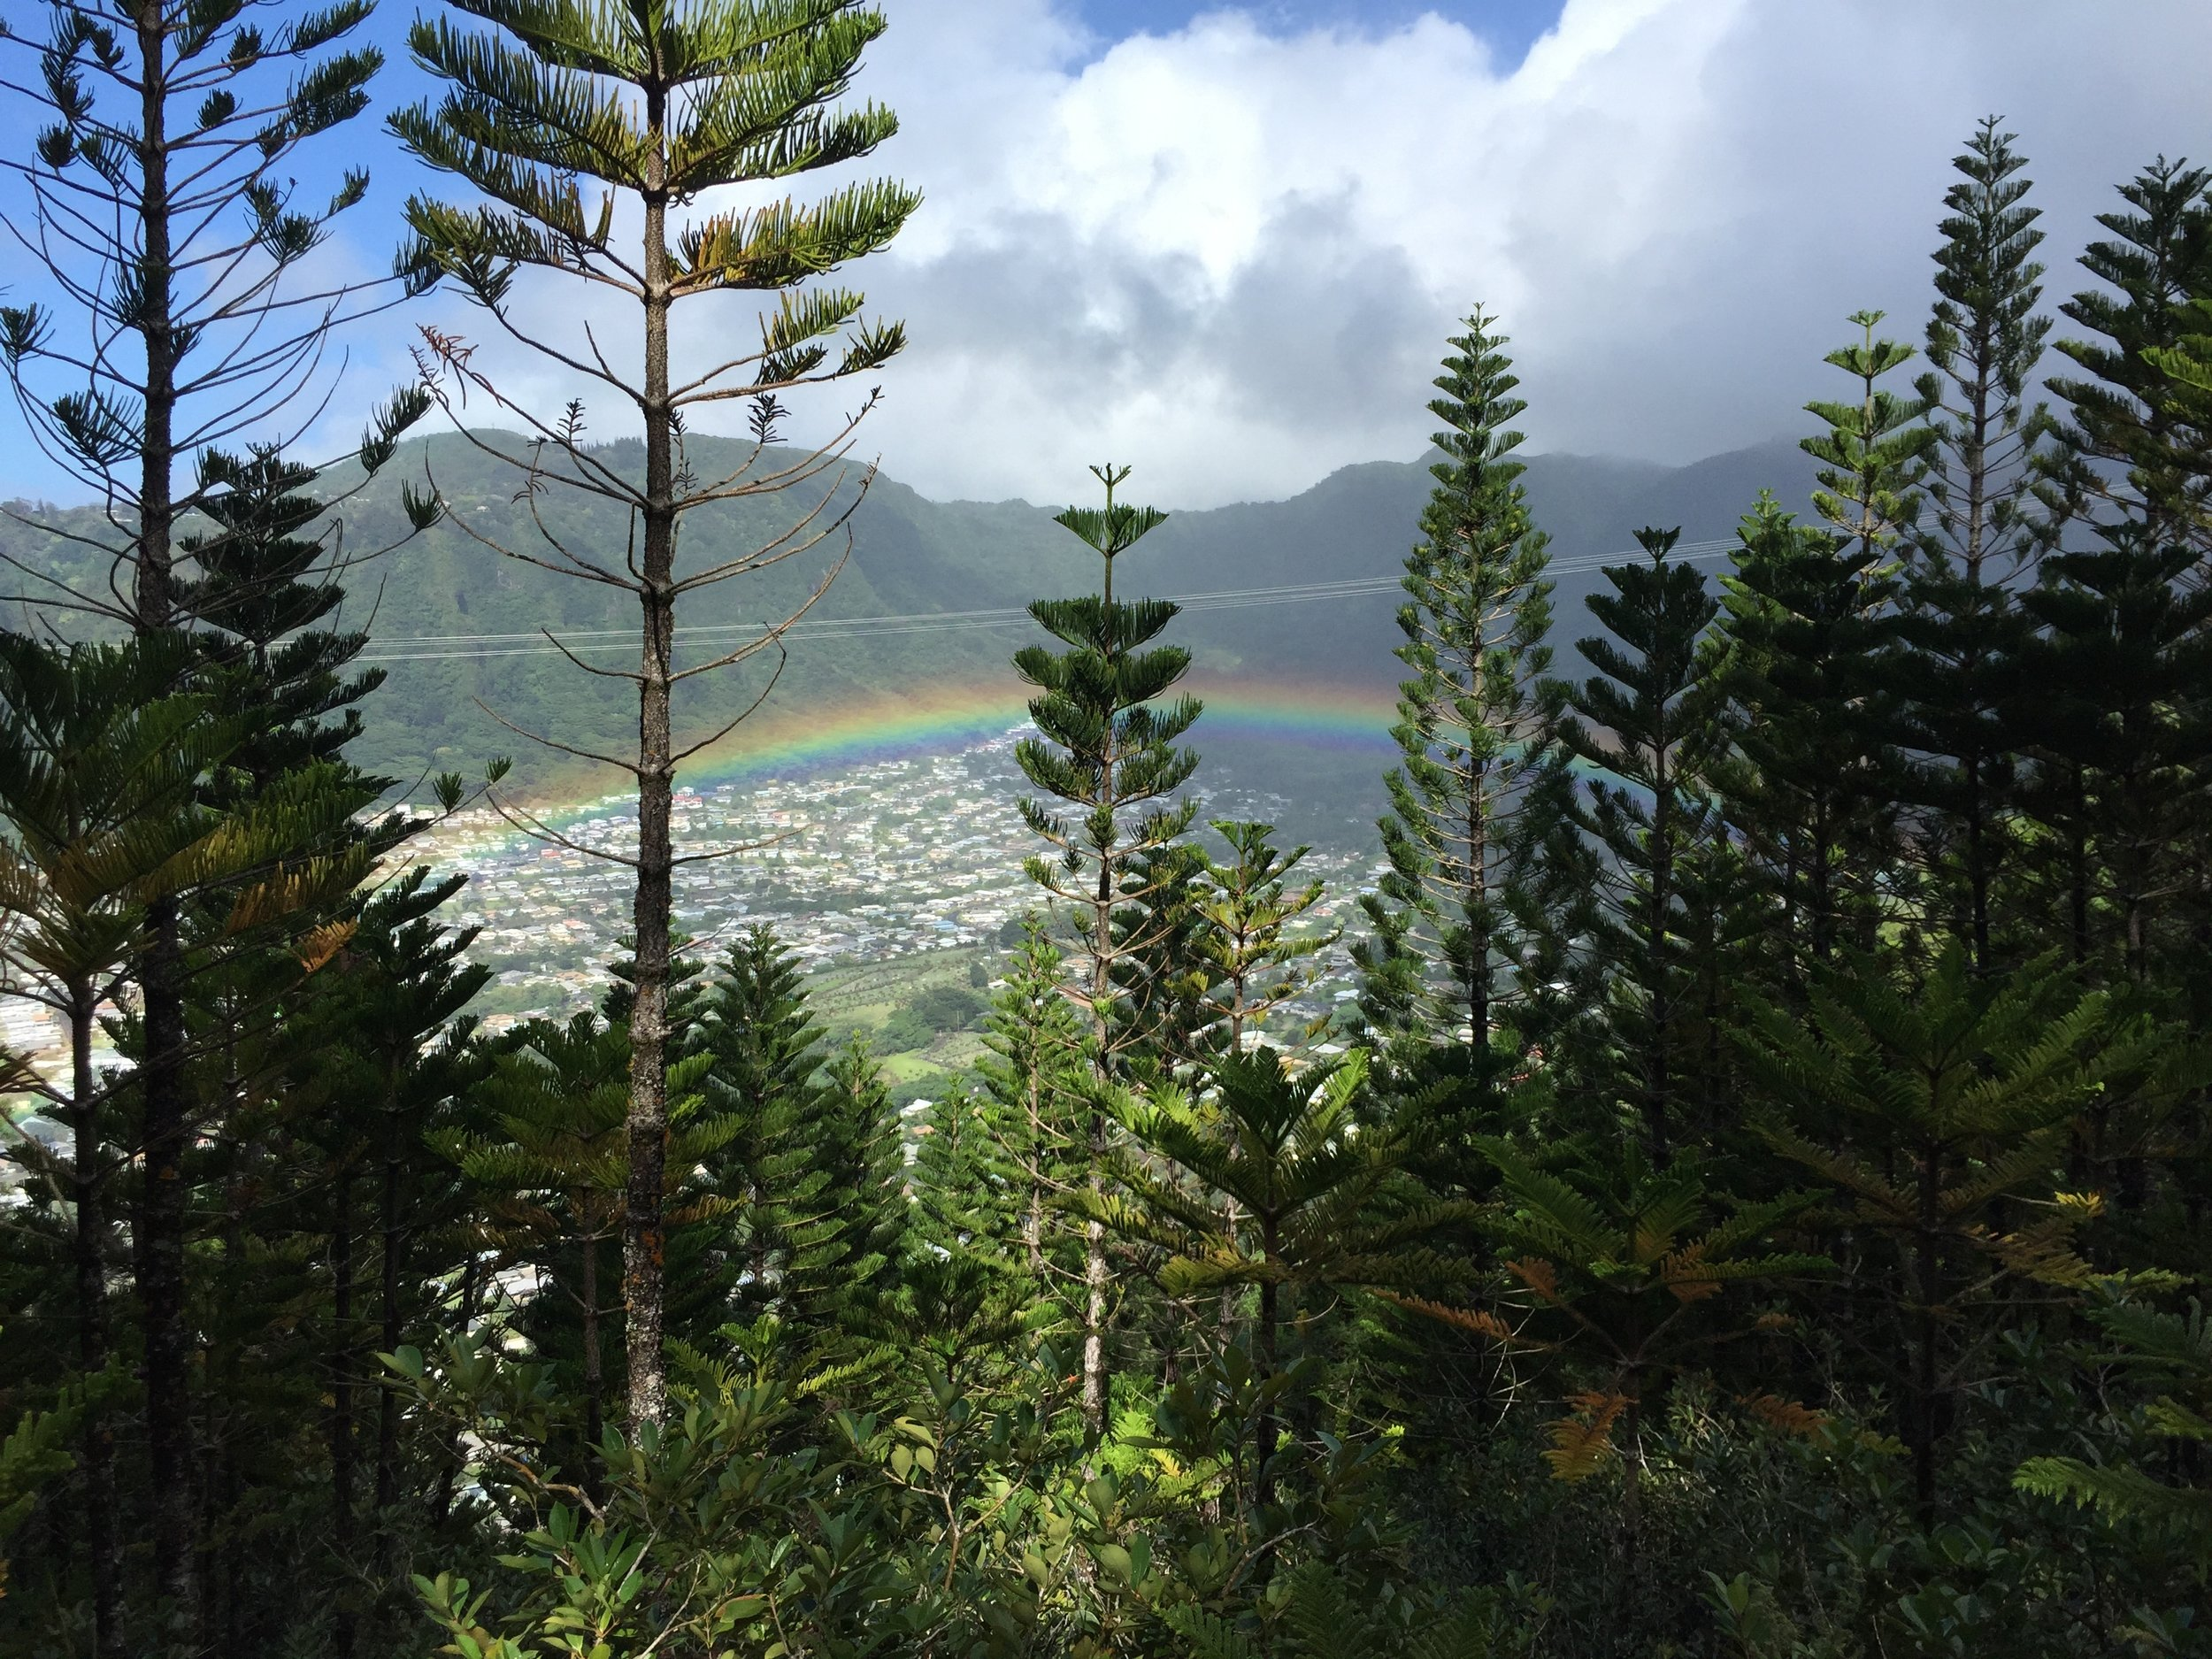 Our lunch view at Wa'ahila Ridge State Recreational Area